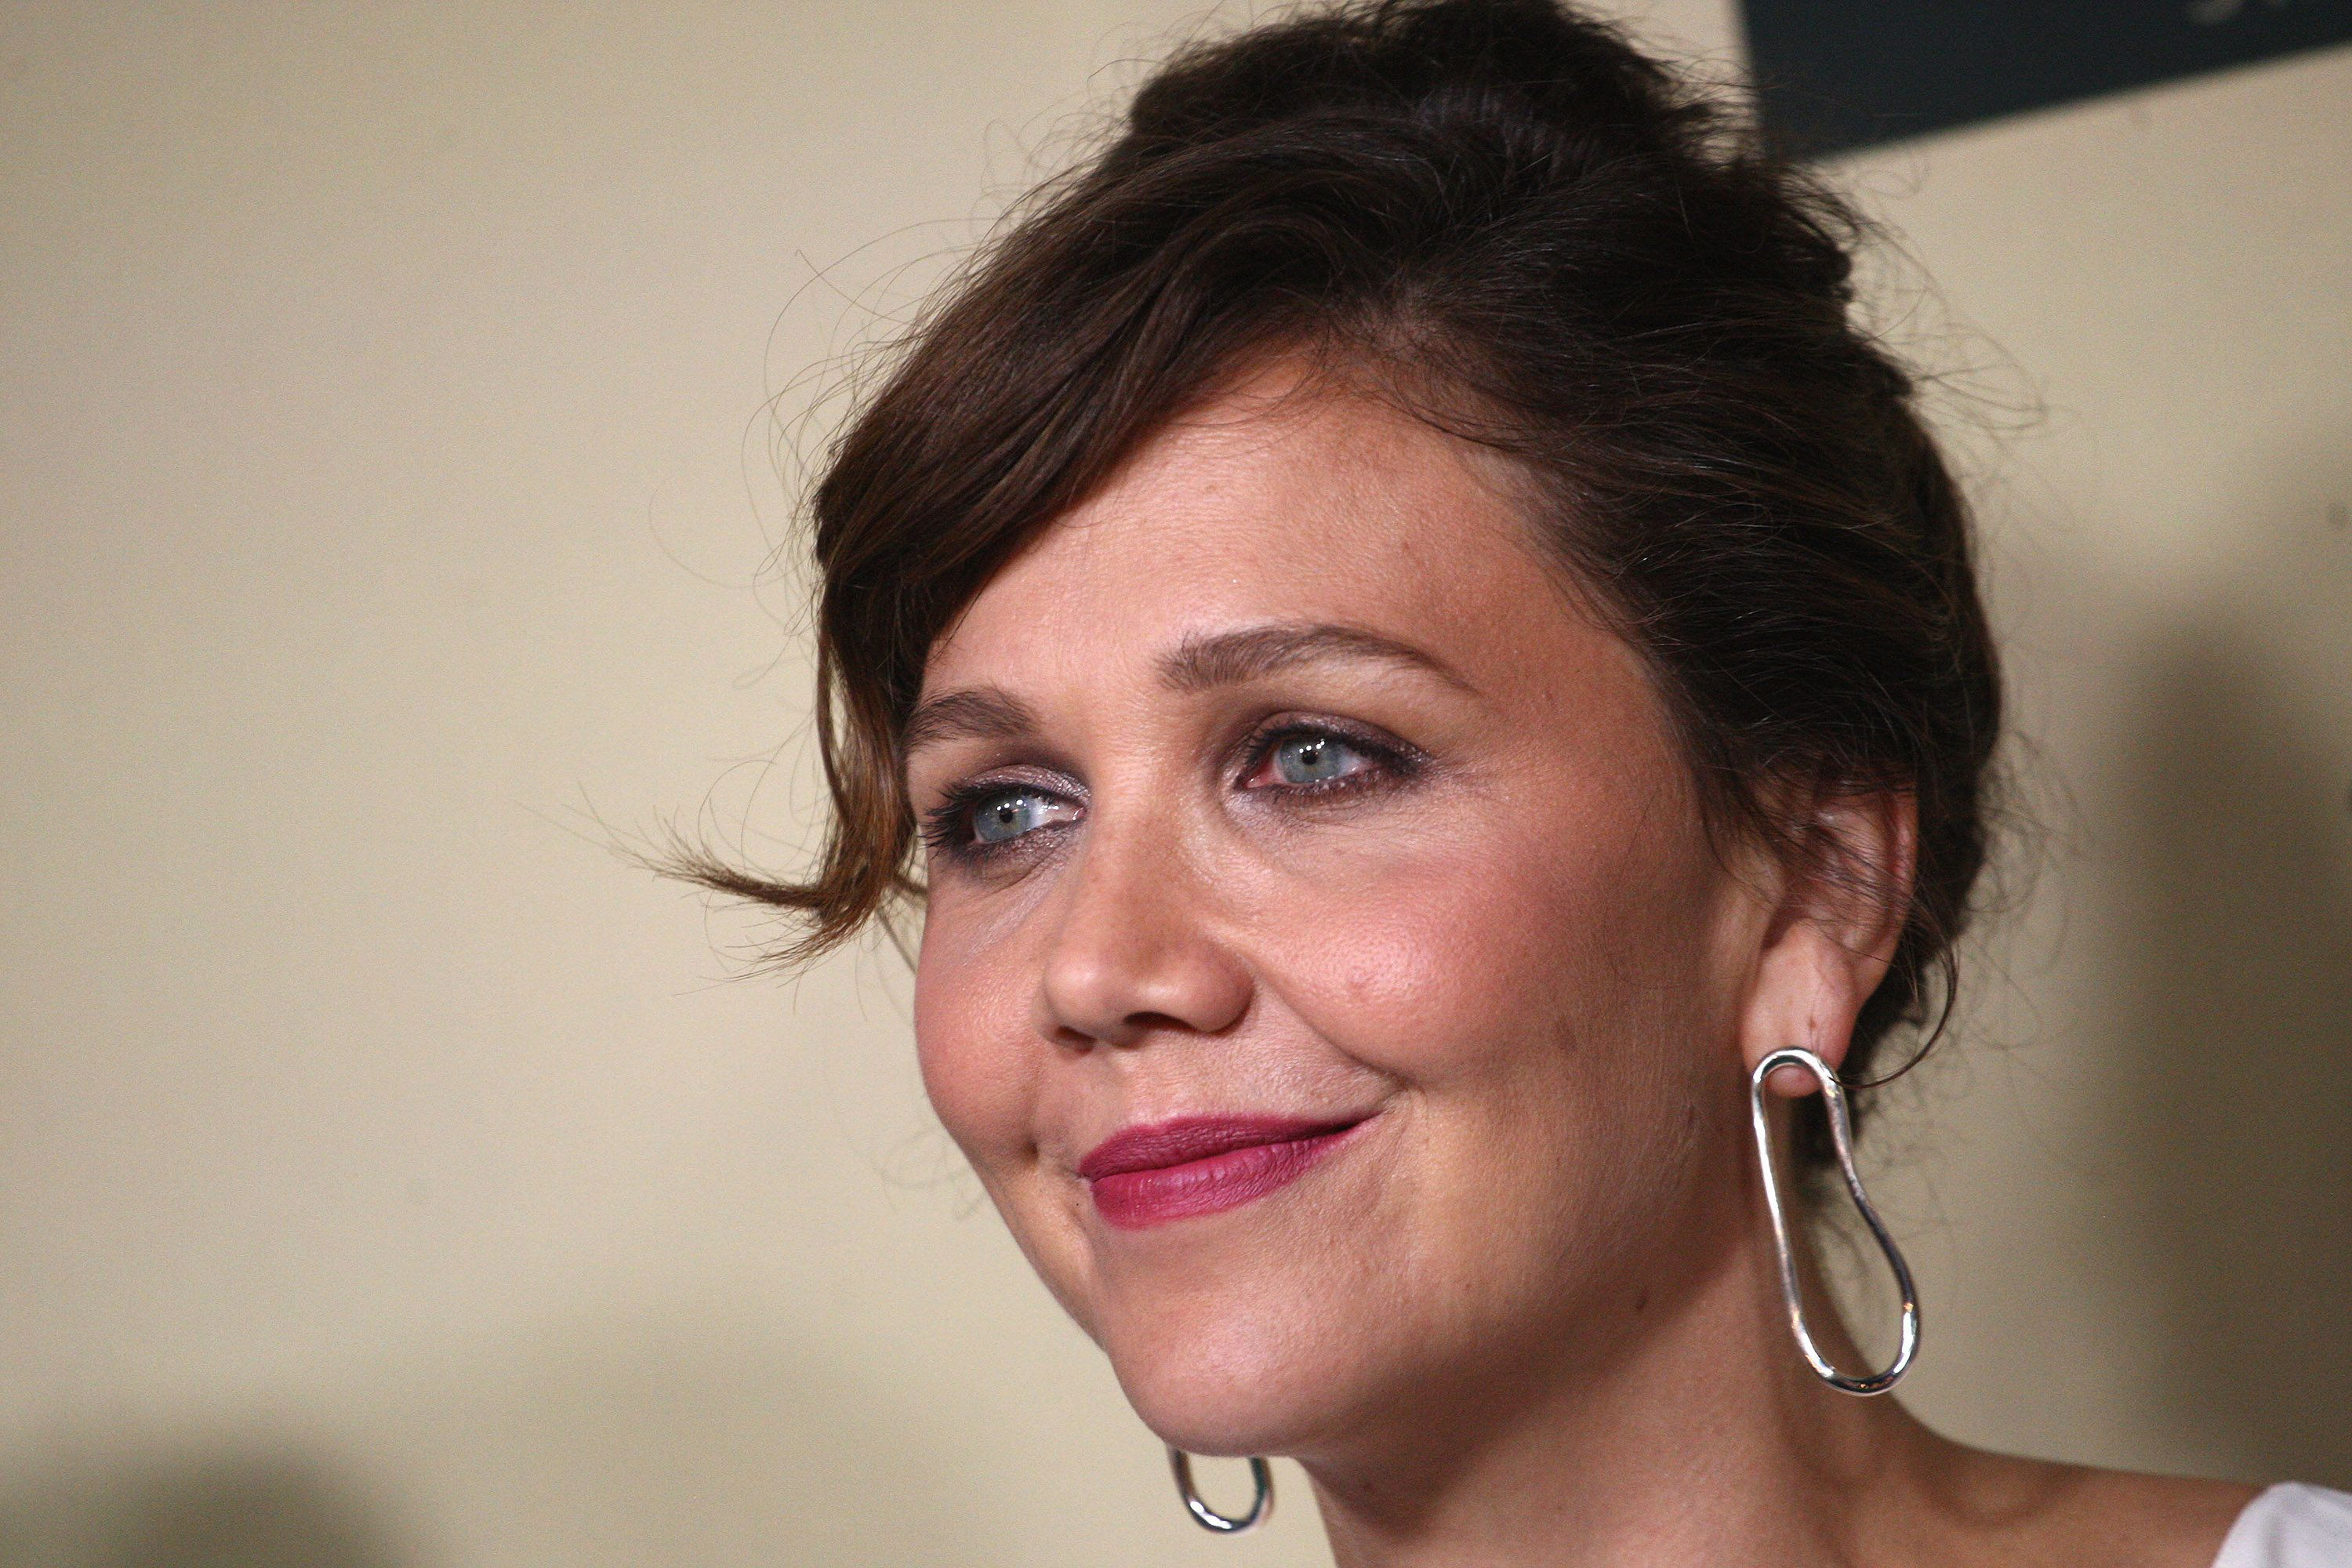 HOLLYWOOD, CA - JULY 30:  Actress Maggie Gyllenhaal attends the Jameson's 'First Shot' Competition  Screening Party at Paramount Studios on July 30, 2016 in Hollywood, California.  (Photo by Tommaso Boddi/WireImage)